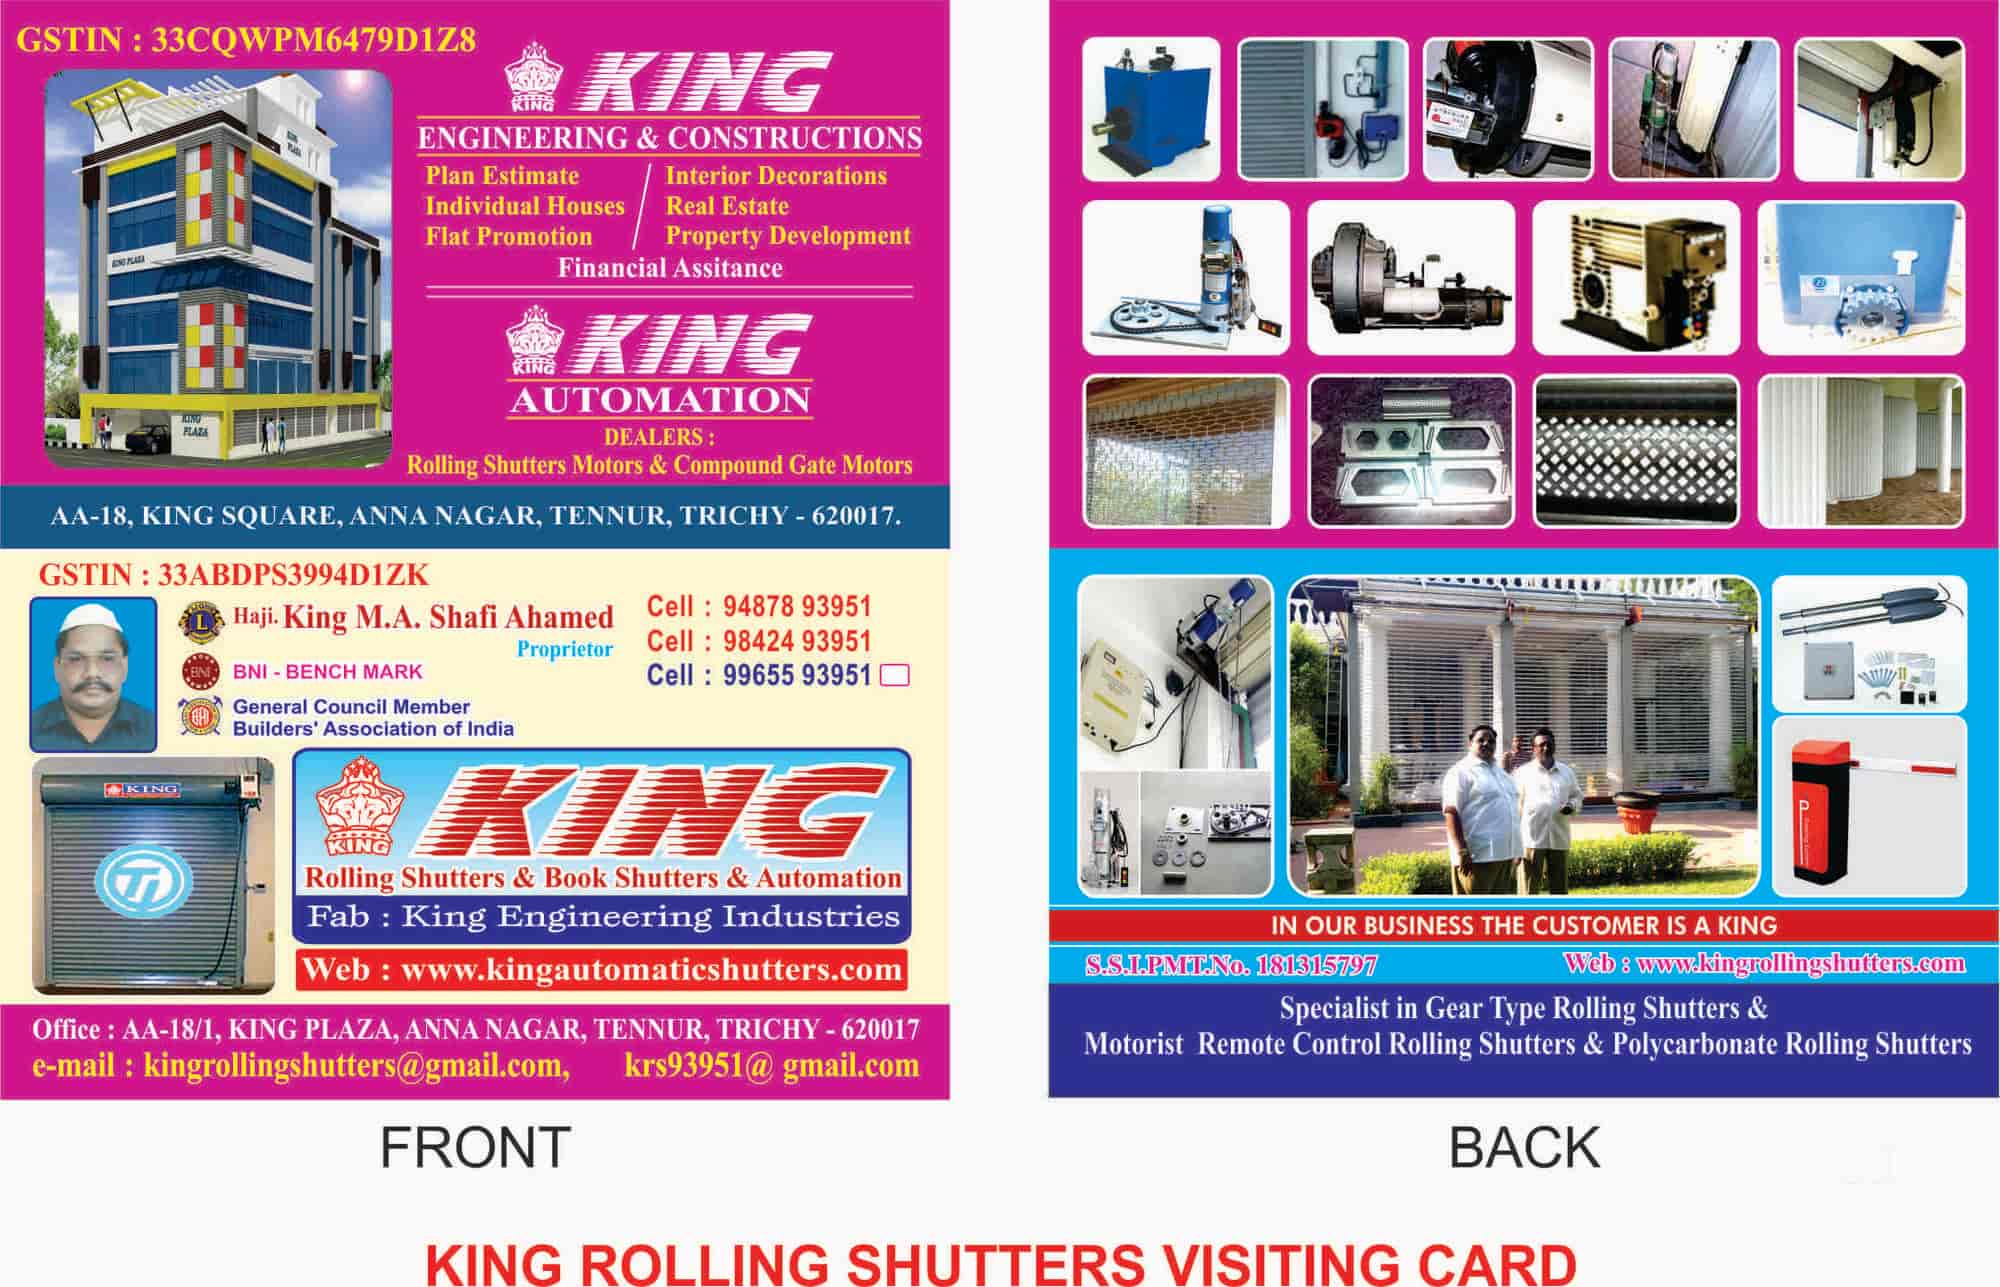 King Automations Tennur Rolling Shutter Manufacturers In Trichy Motor Control Justdial